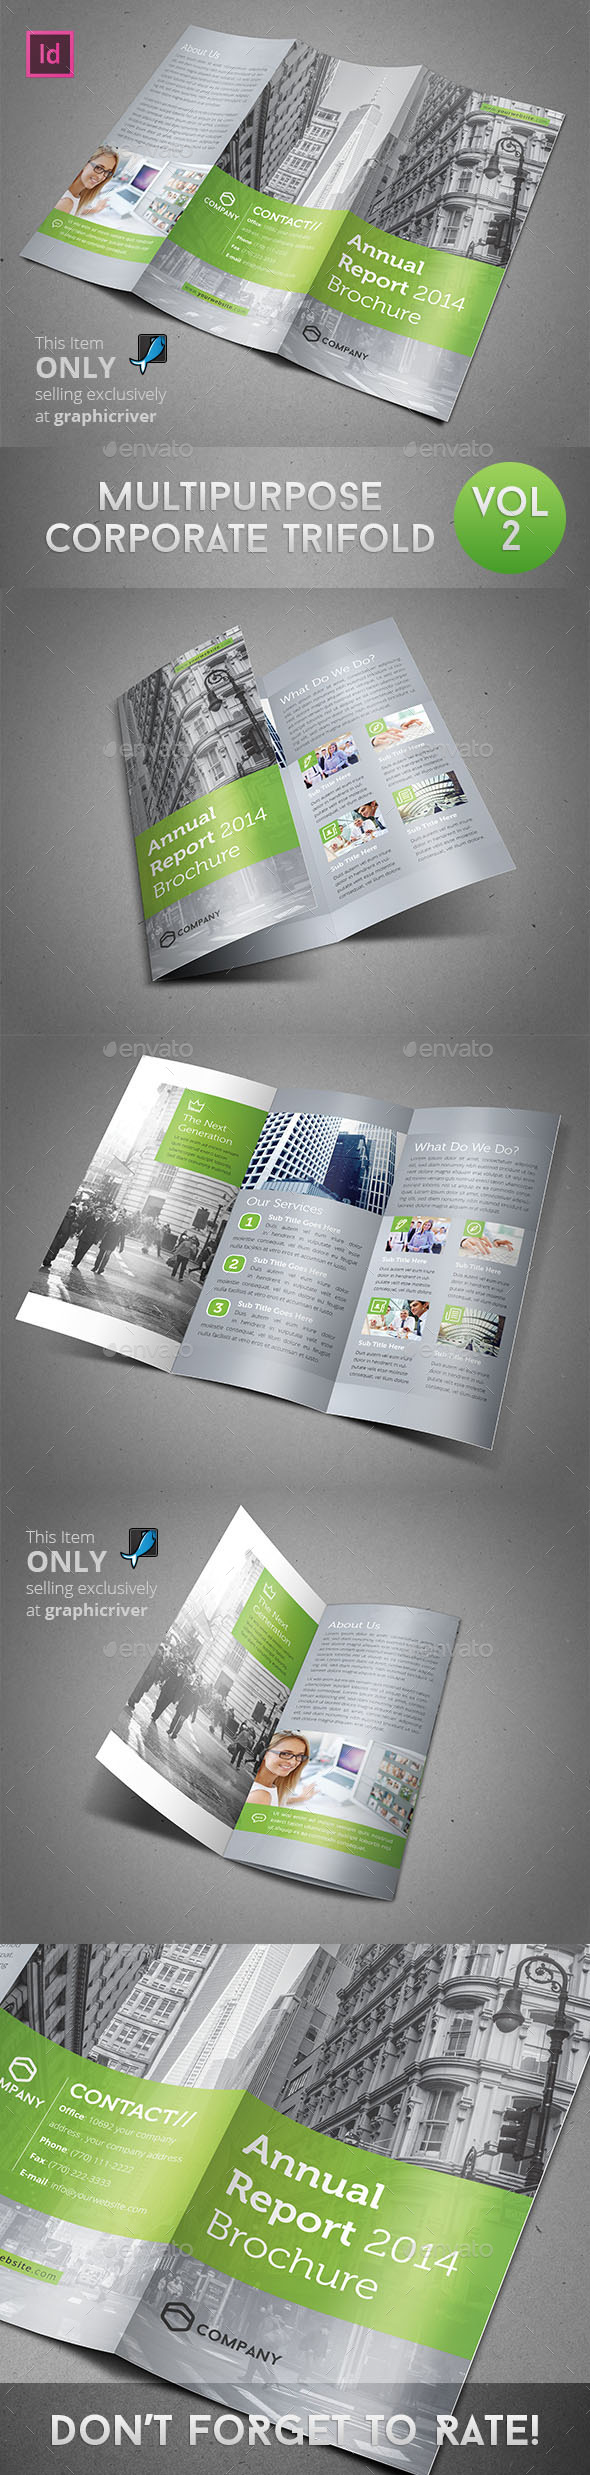 Multipurpose Corporate Trifold Vol 2